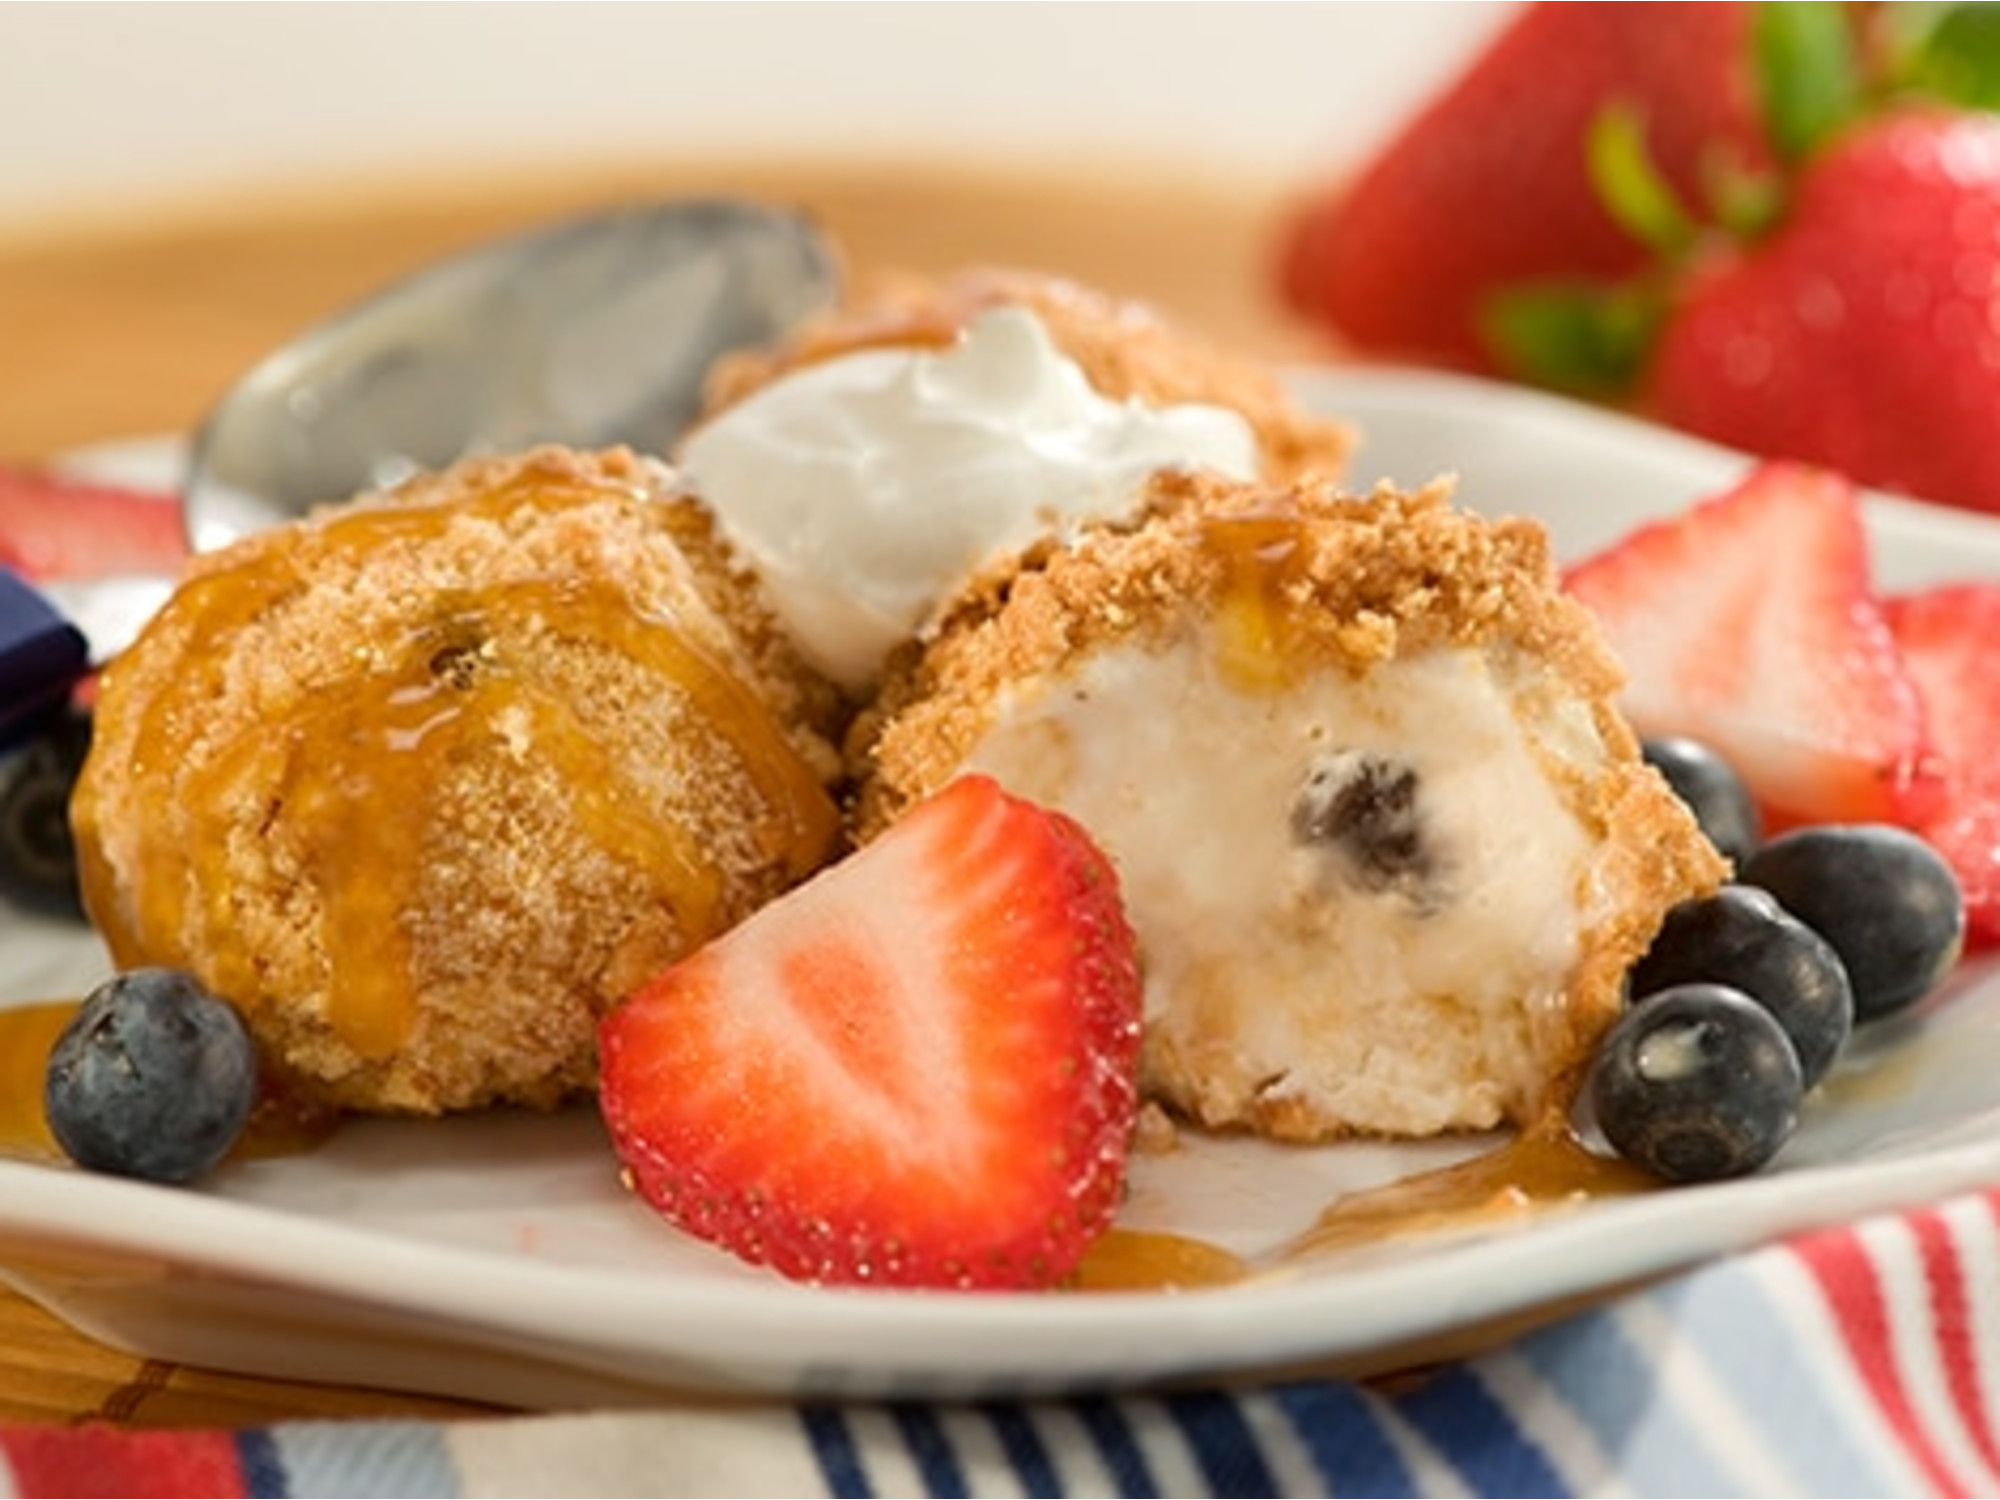 Unfried Ice Cream